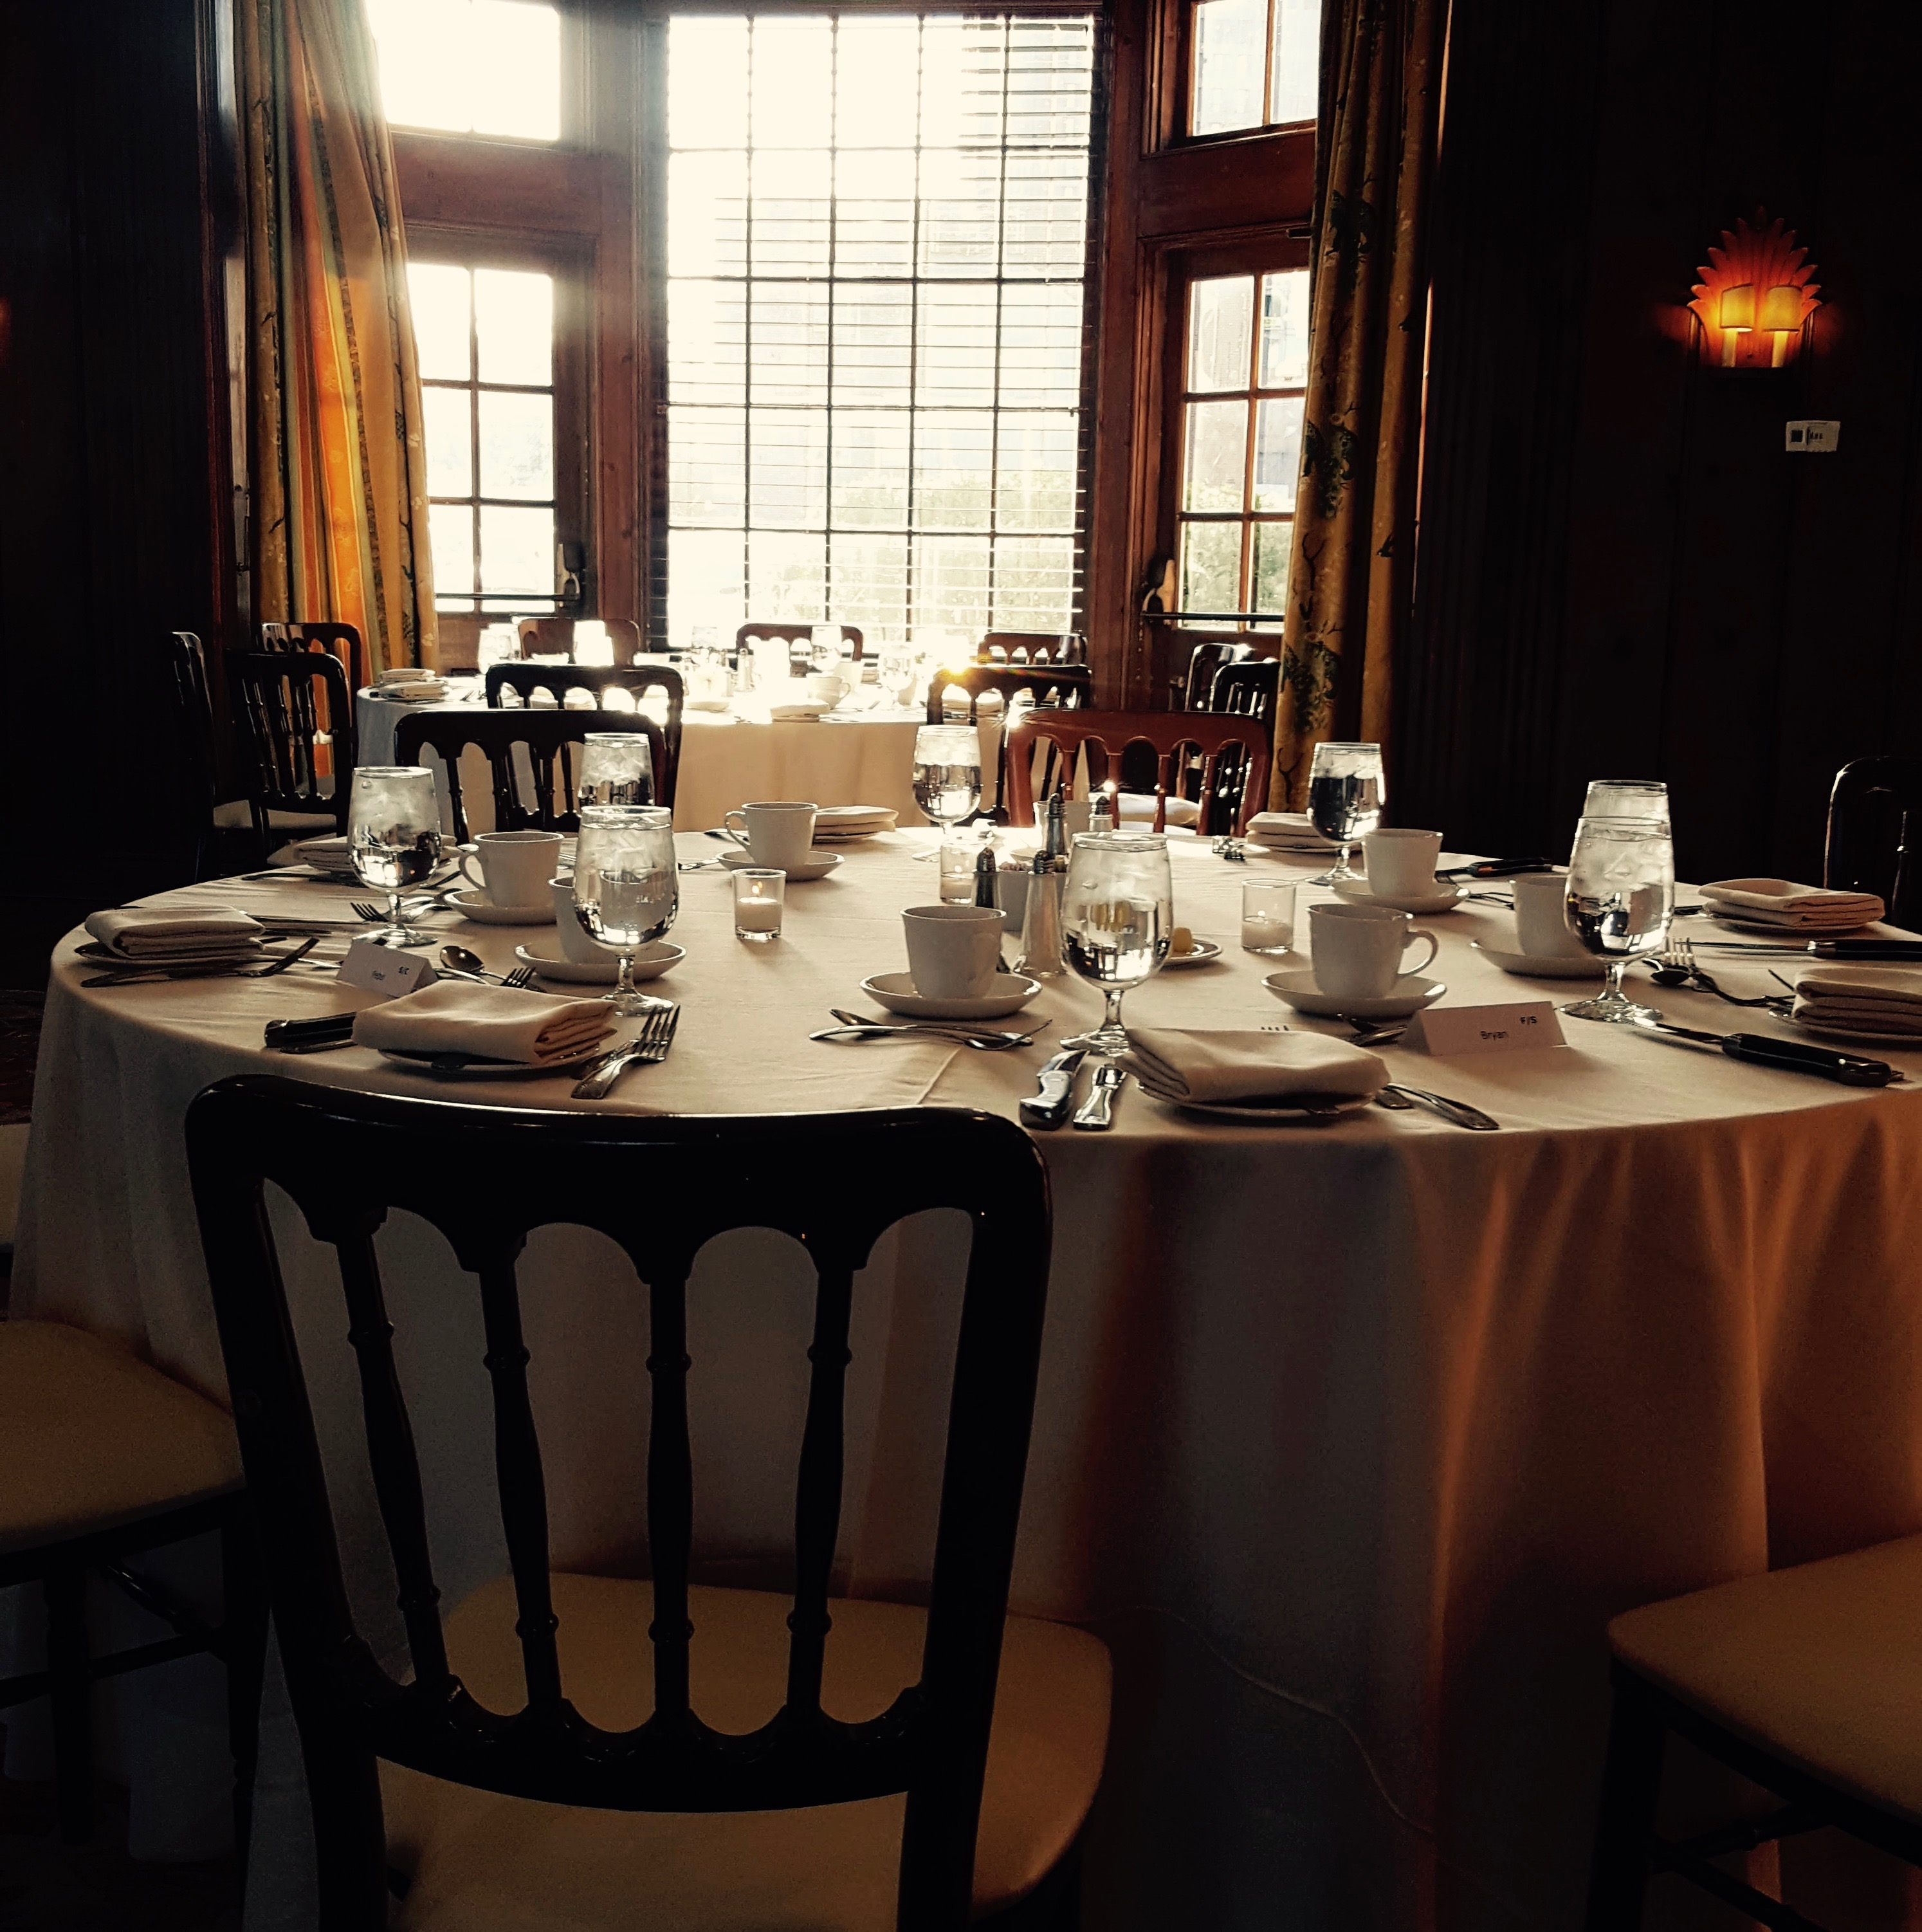 Table settings at the New Haven Lawn Club, where the 2018 HRAF Board Dinner was held.